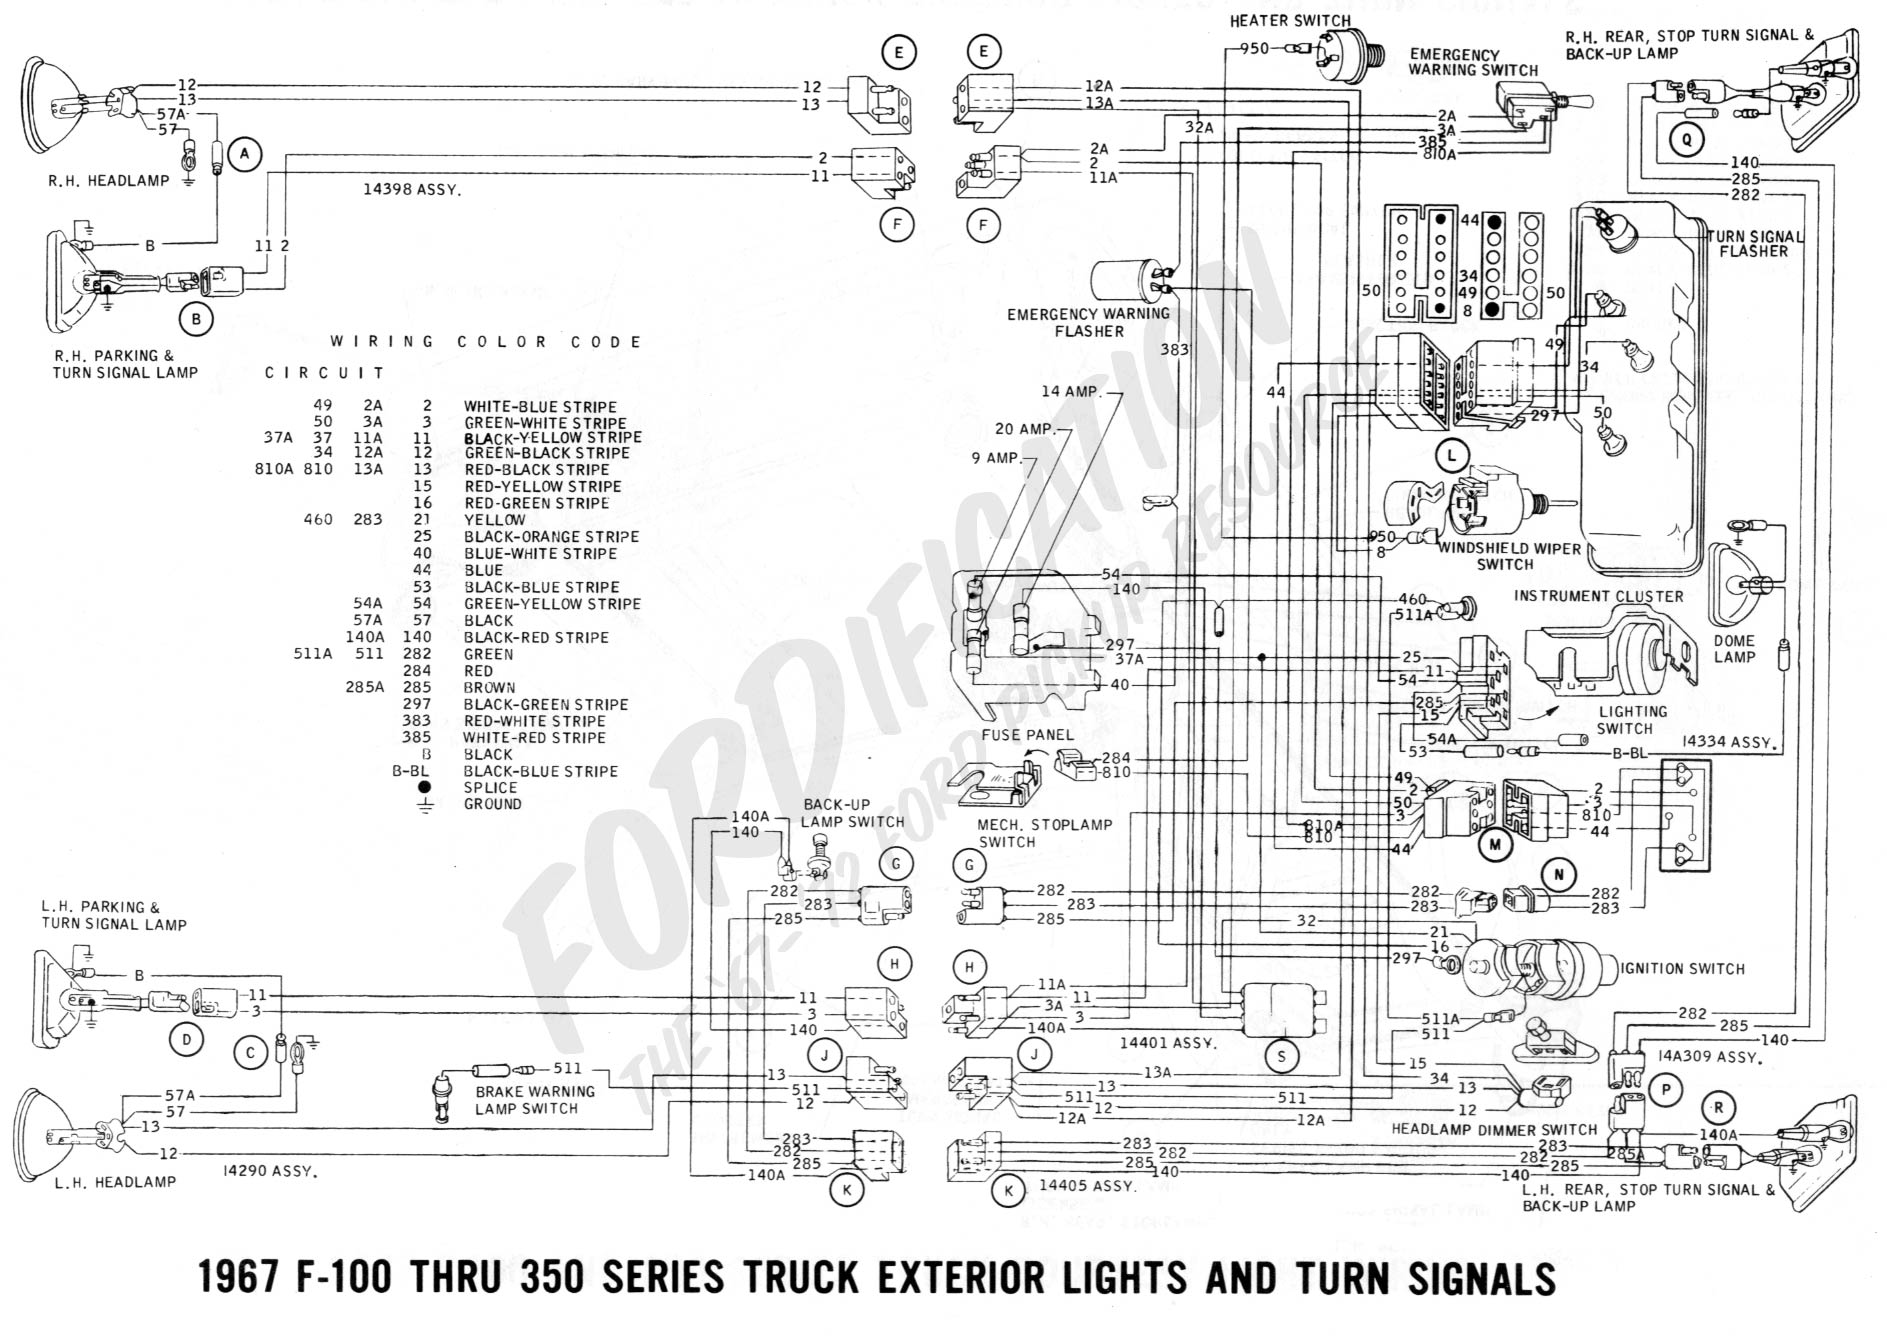 1967 F150 Wiring Diagram Data Schematic 2011 328i Ford Truck Technical Drawings And Schematics Section H Rh Fordification Com 2009 1977